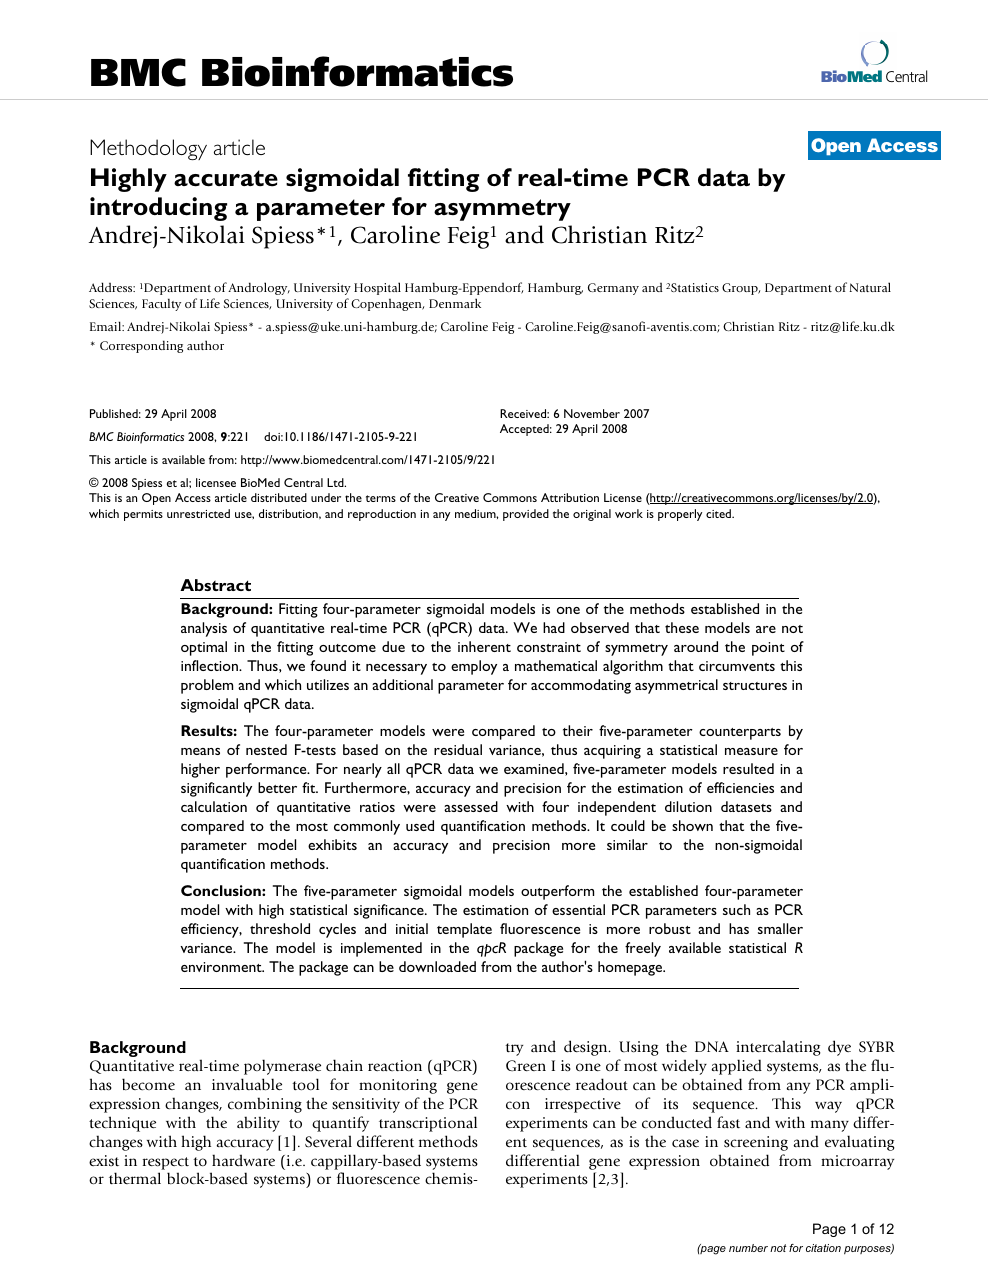 Highly accurate sigmoidal fitting of real-time PCR data by